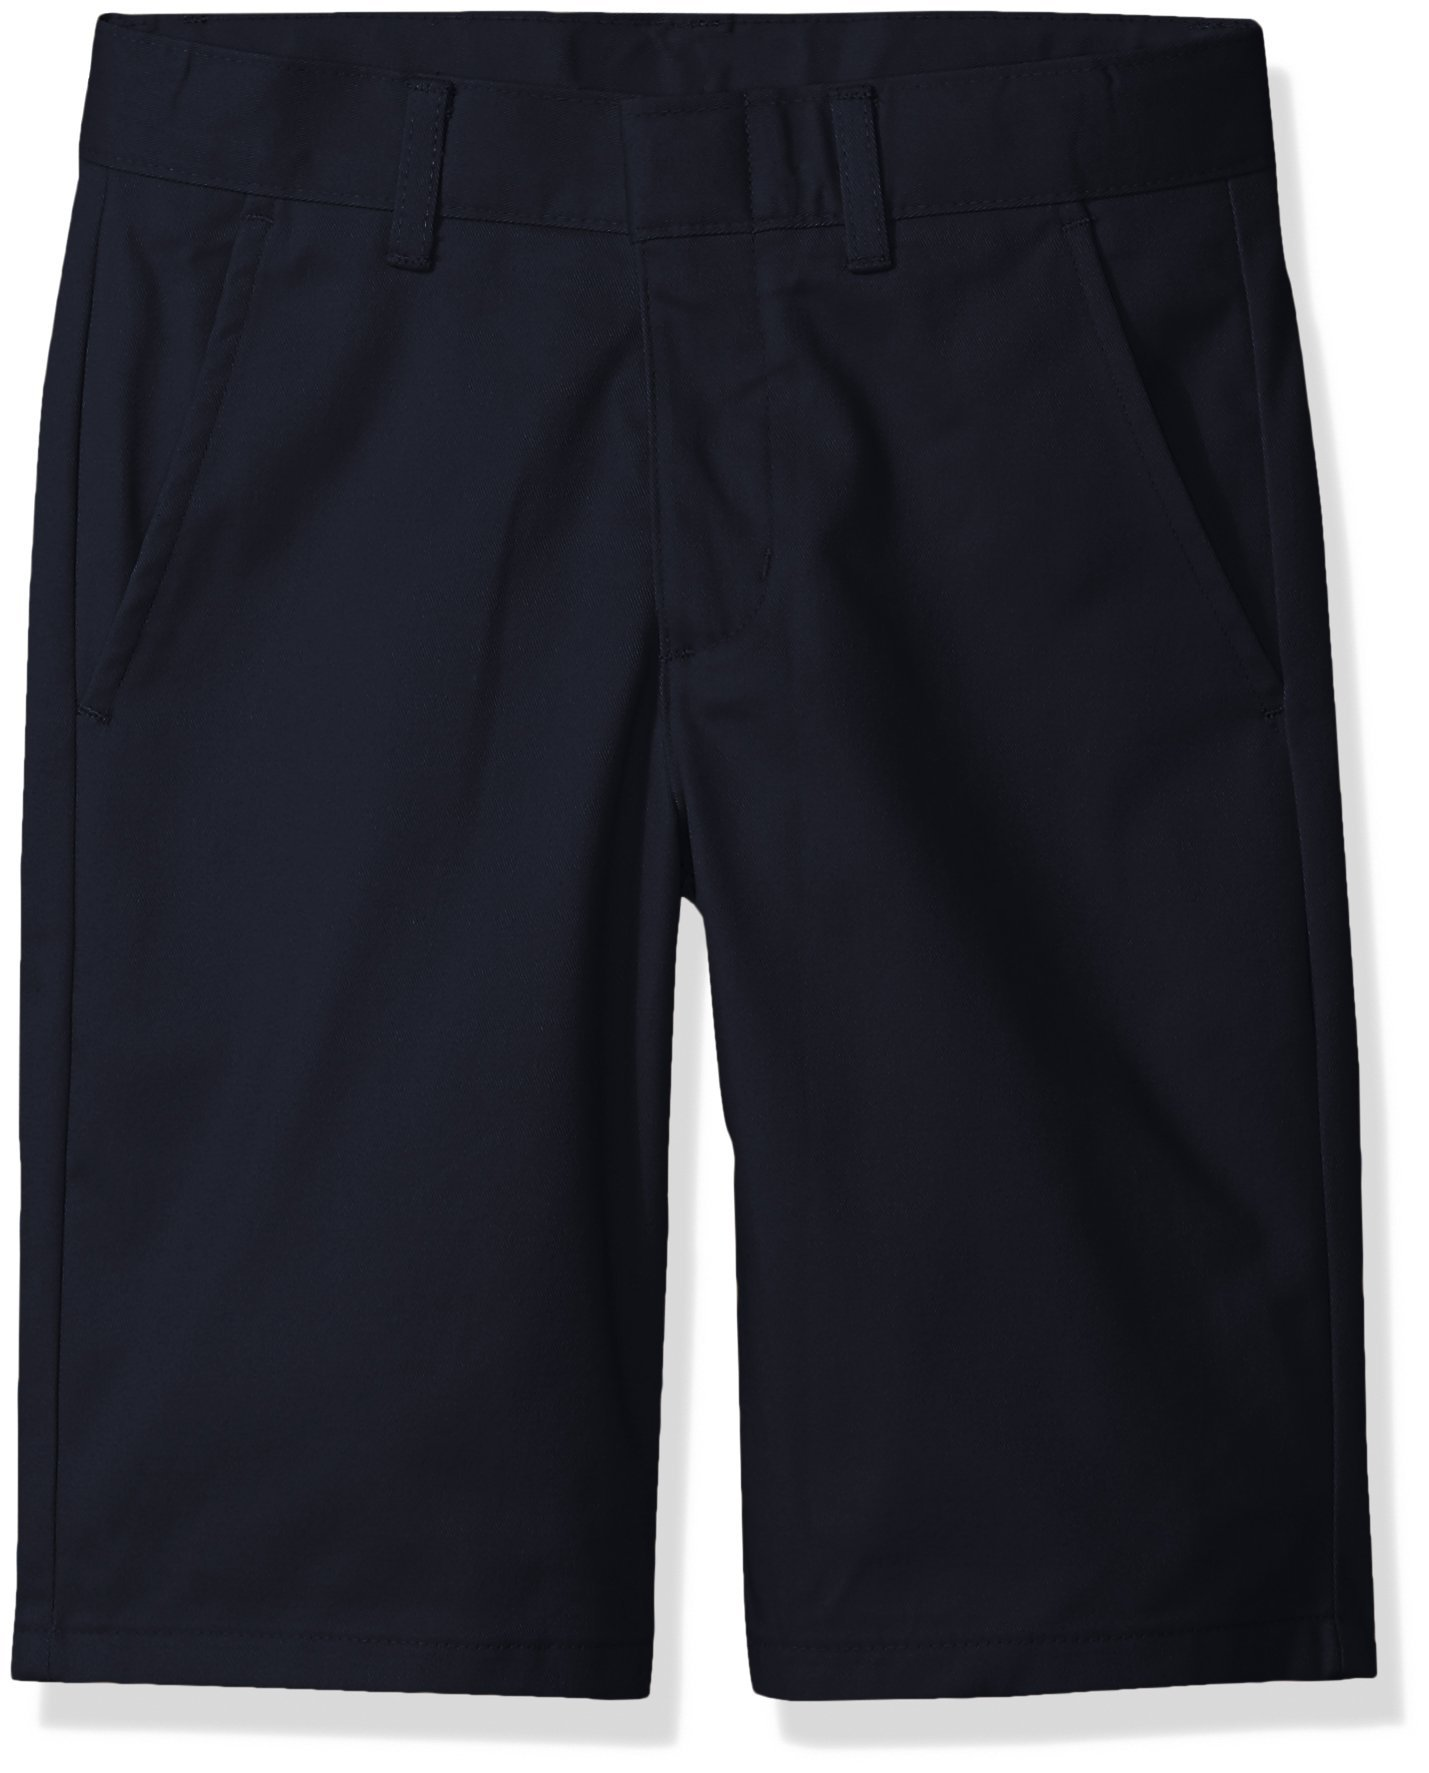 Nautica Husky Boys' Uniform Flat Front Twill Short, Navy, Large/14/Husky